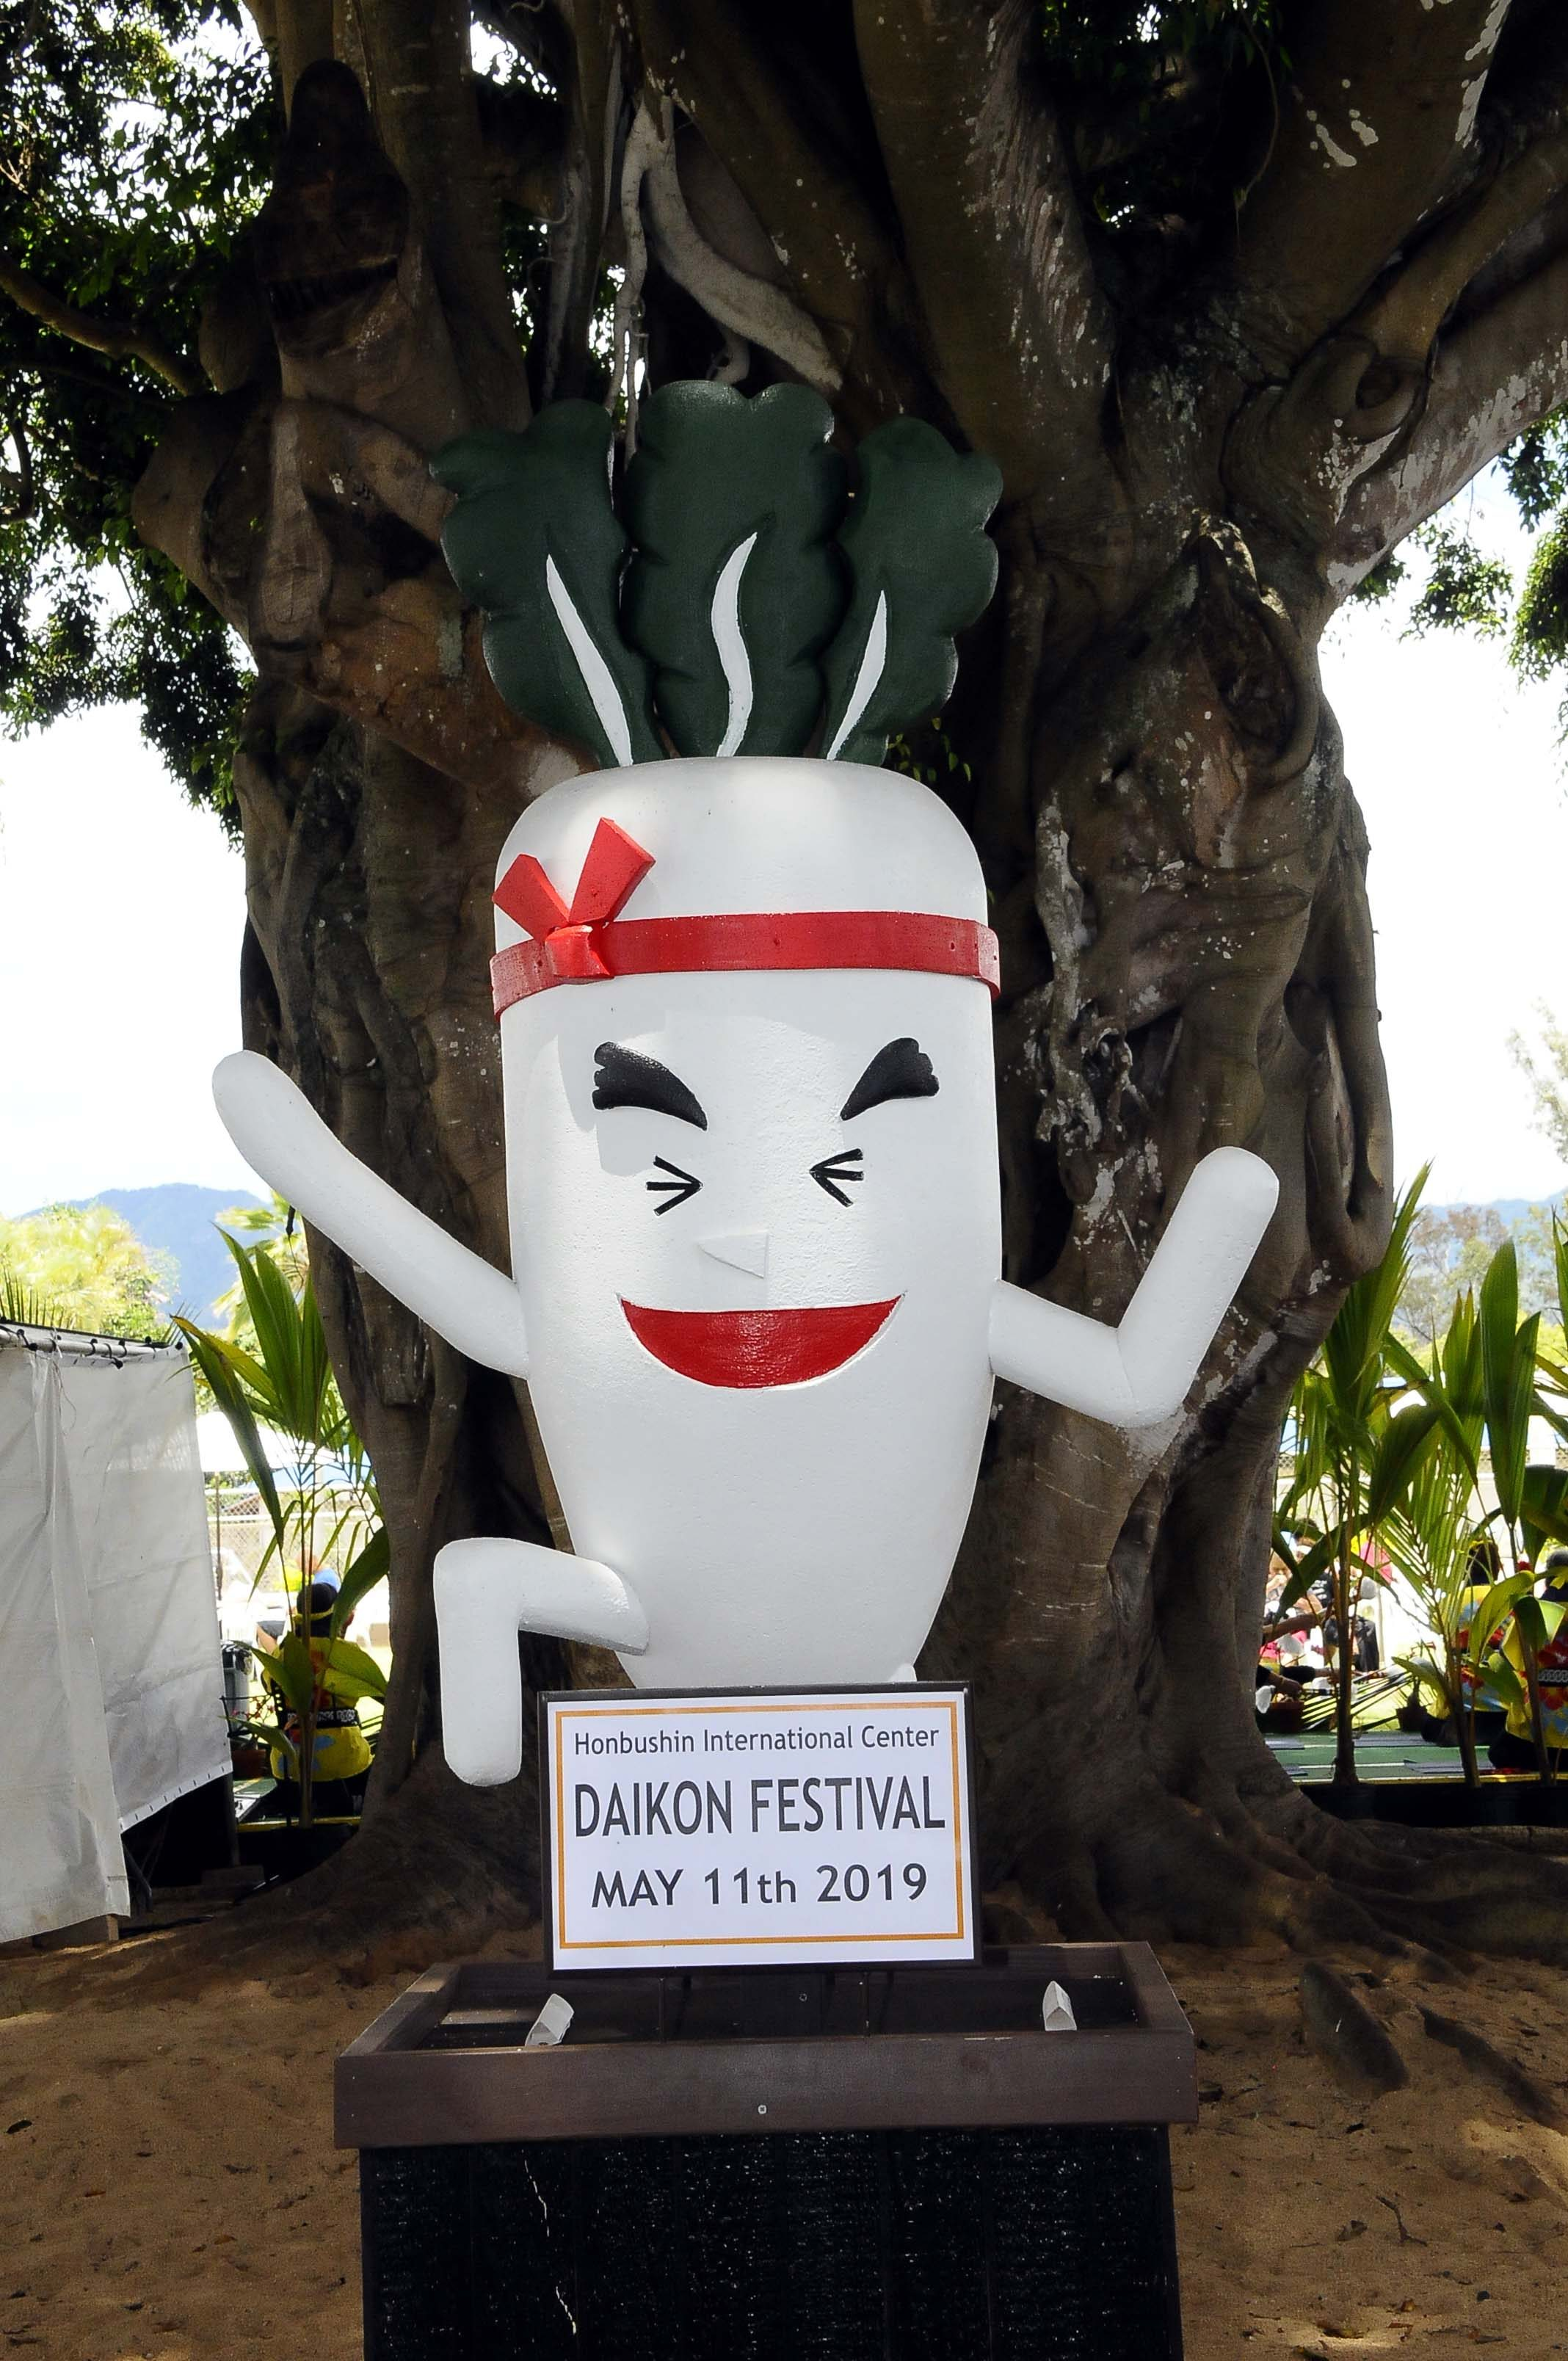 Welcome to the Honbushin International Center Daikon Festival!